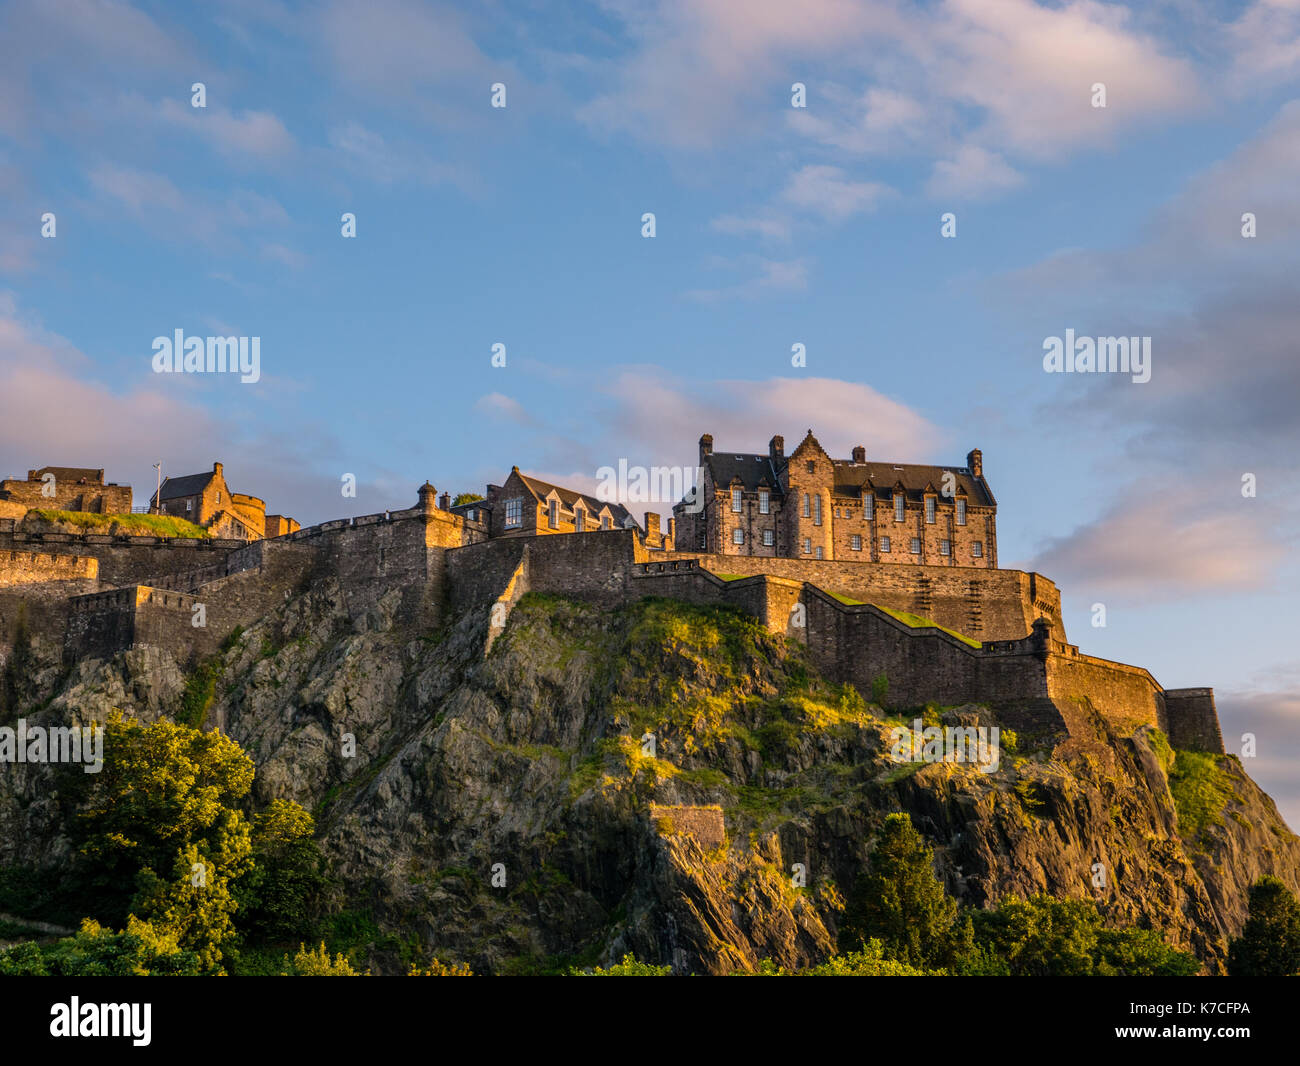 Sunset, Edinburgh Castle, viewed from Princes Street Gardens, Edinburgh Castle, Castle Rock, Edinburgh, Scotland. - Stock Image